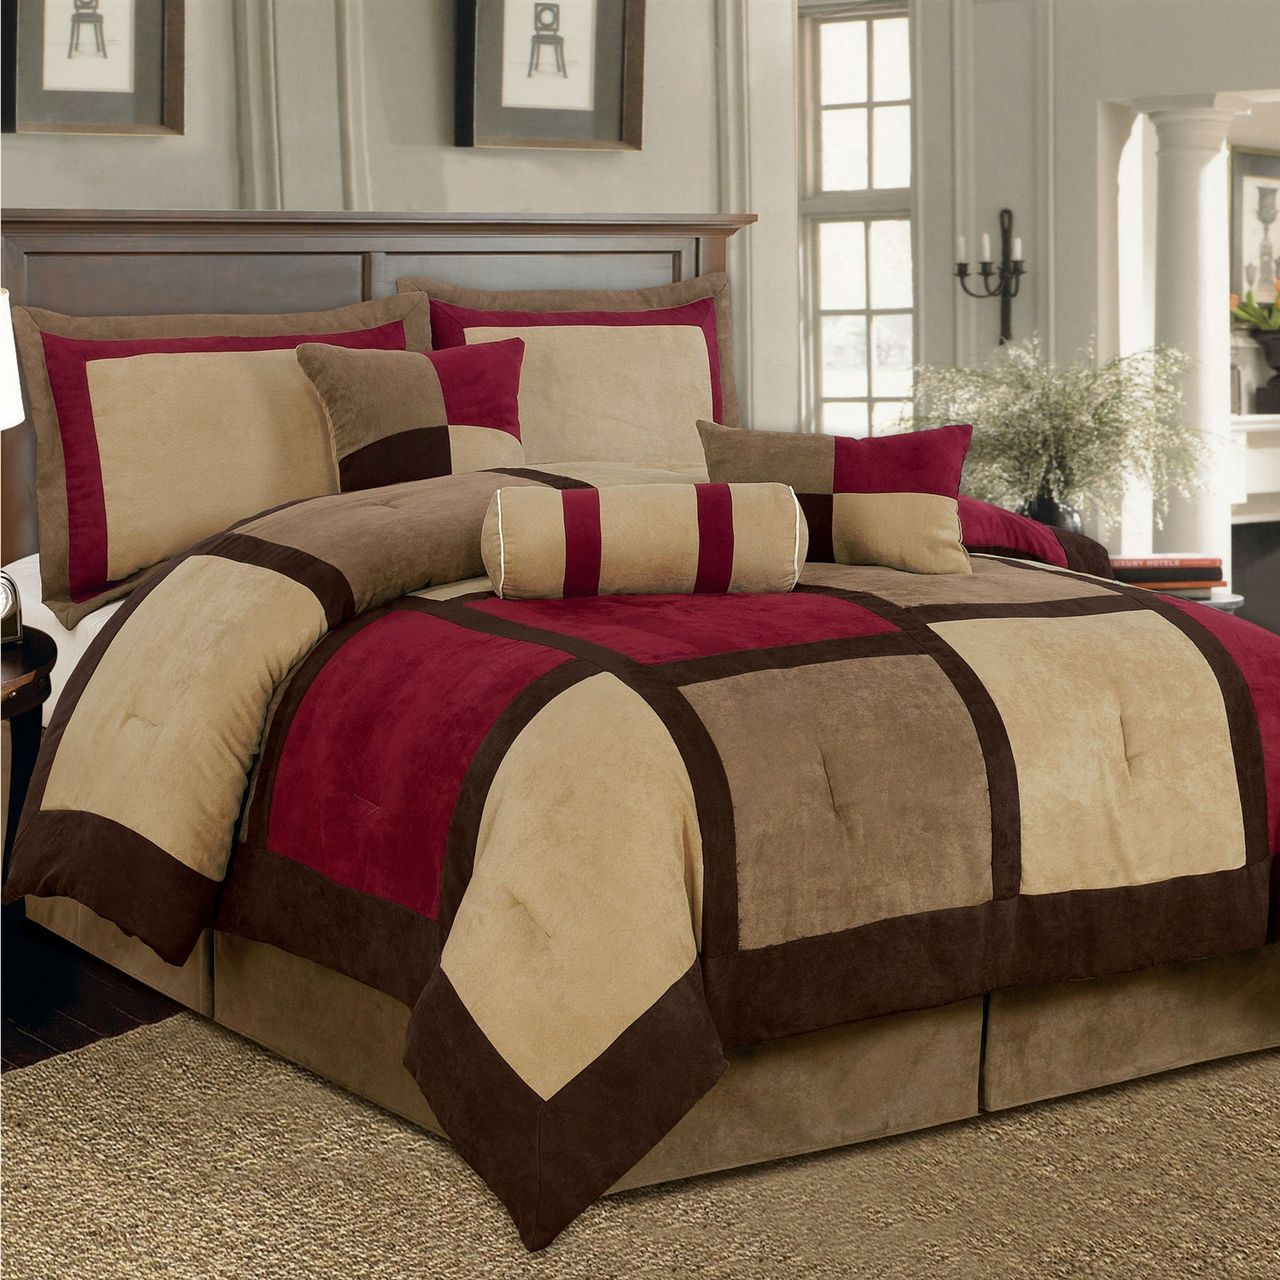 platform in frame diions bedroom popular style a best cal incredible vs bag bedding king sets feet bed on of size for clearance storage and imgid california comforter